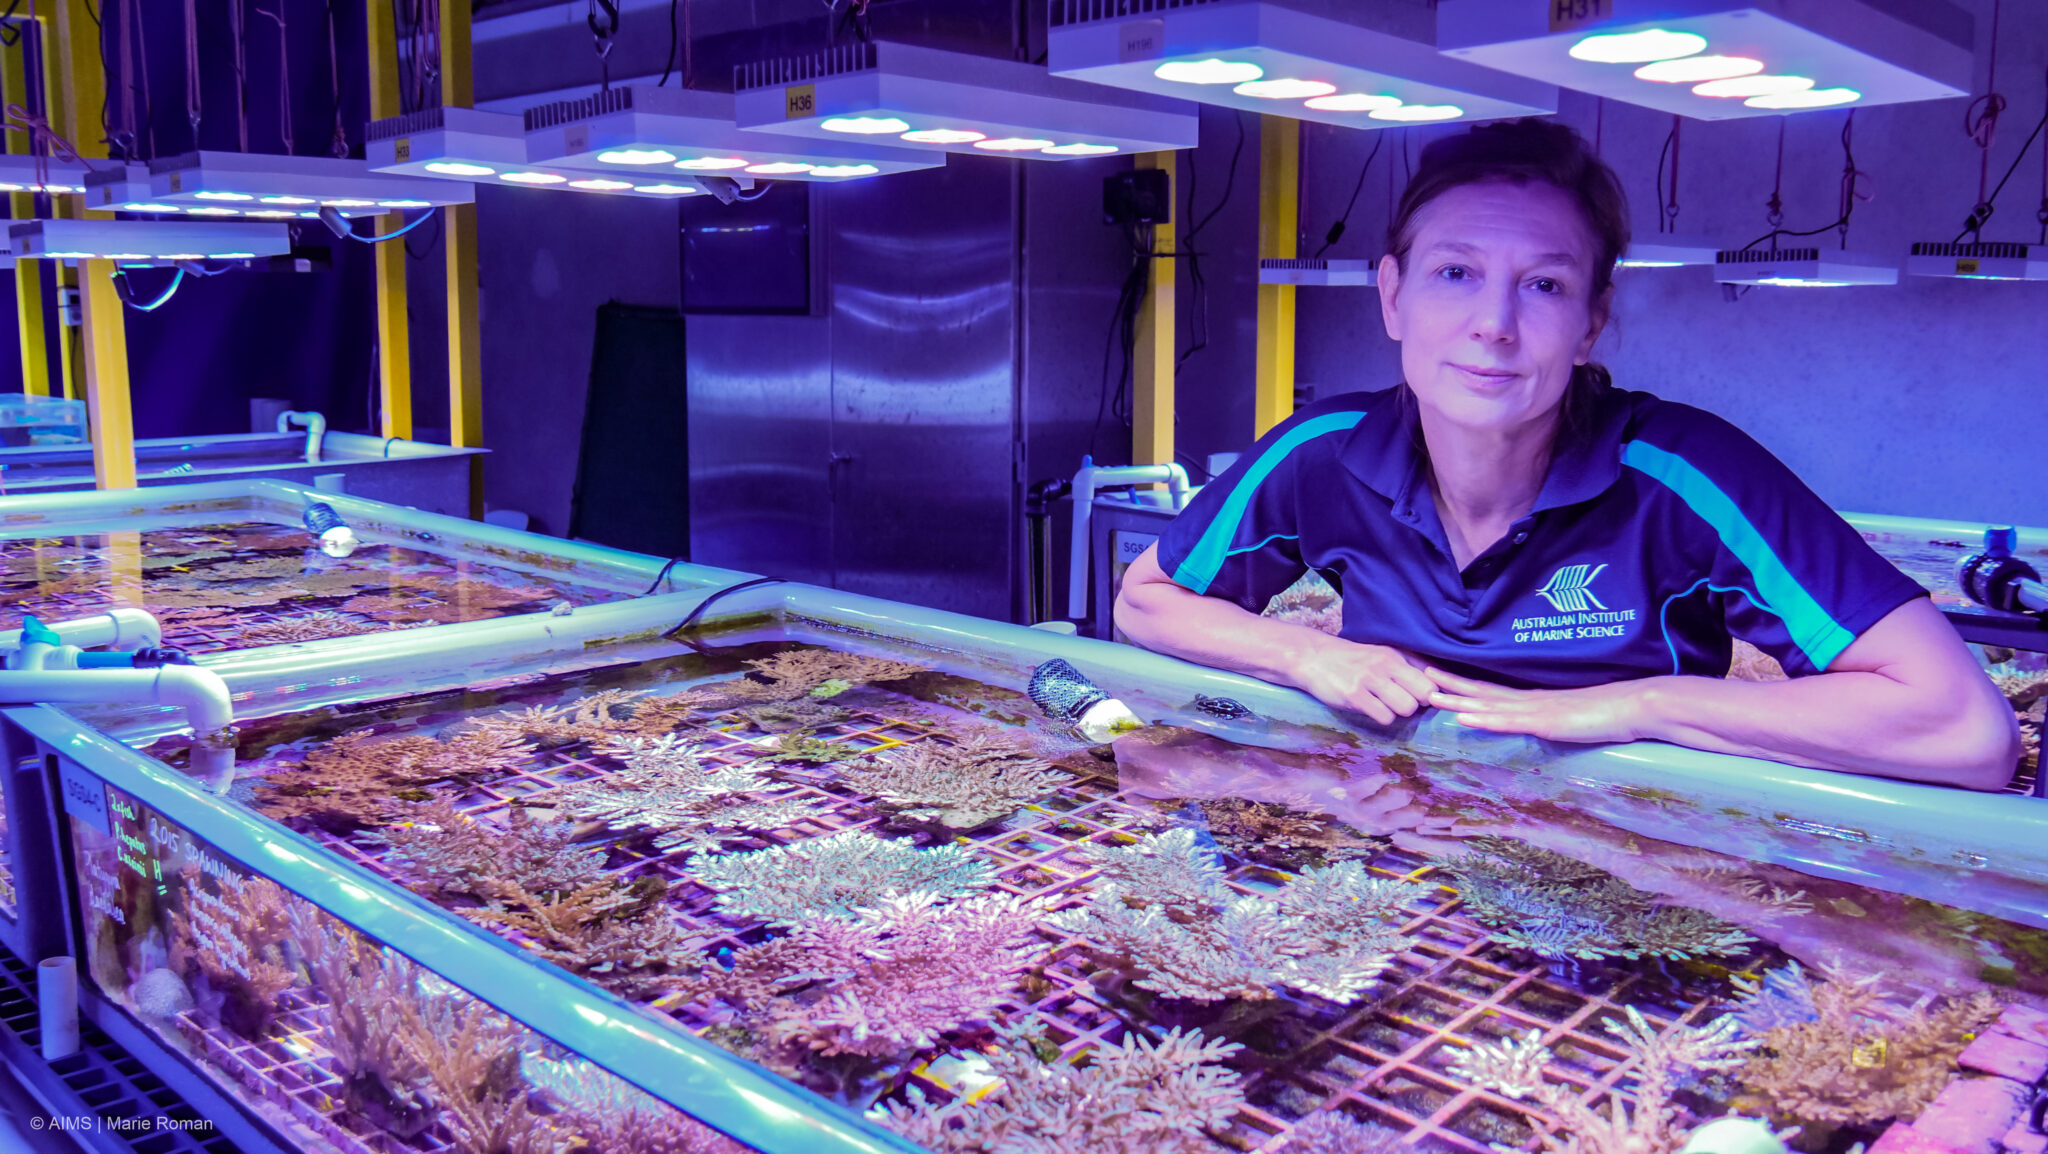 Paul G. Allen Family Foundation funds $7.2M in grants to shield coral reefs from decline